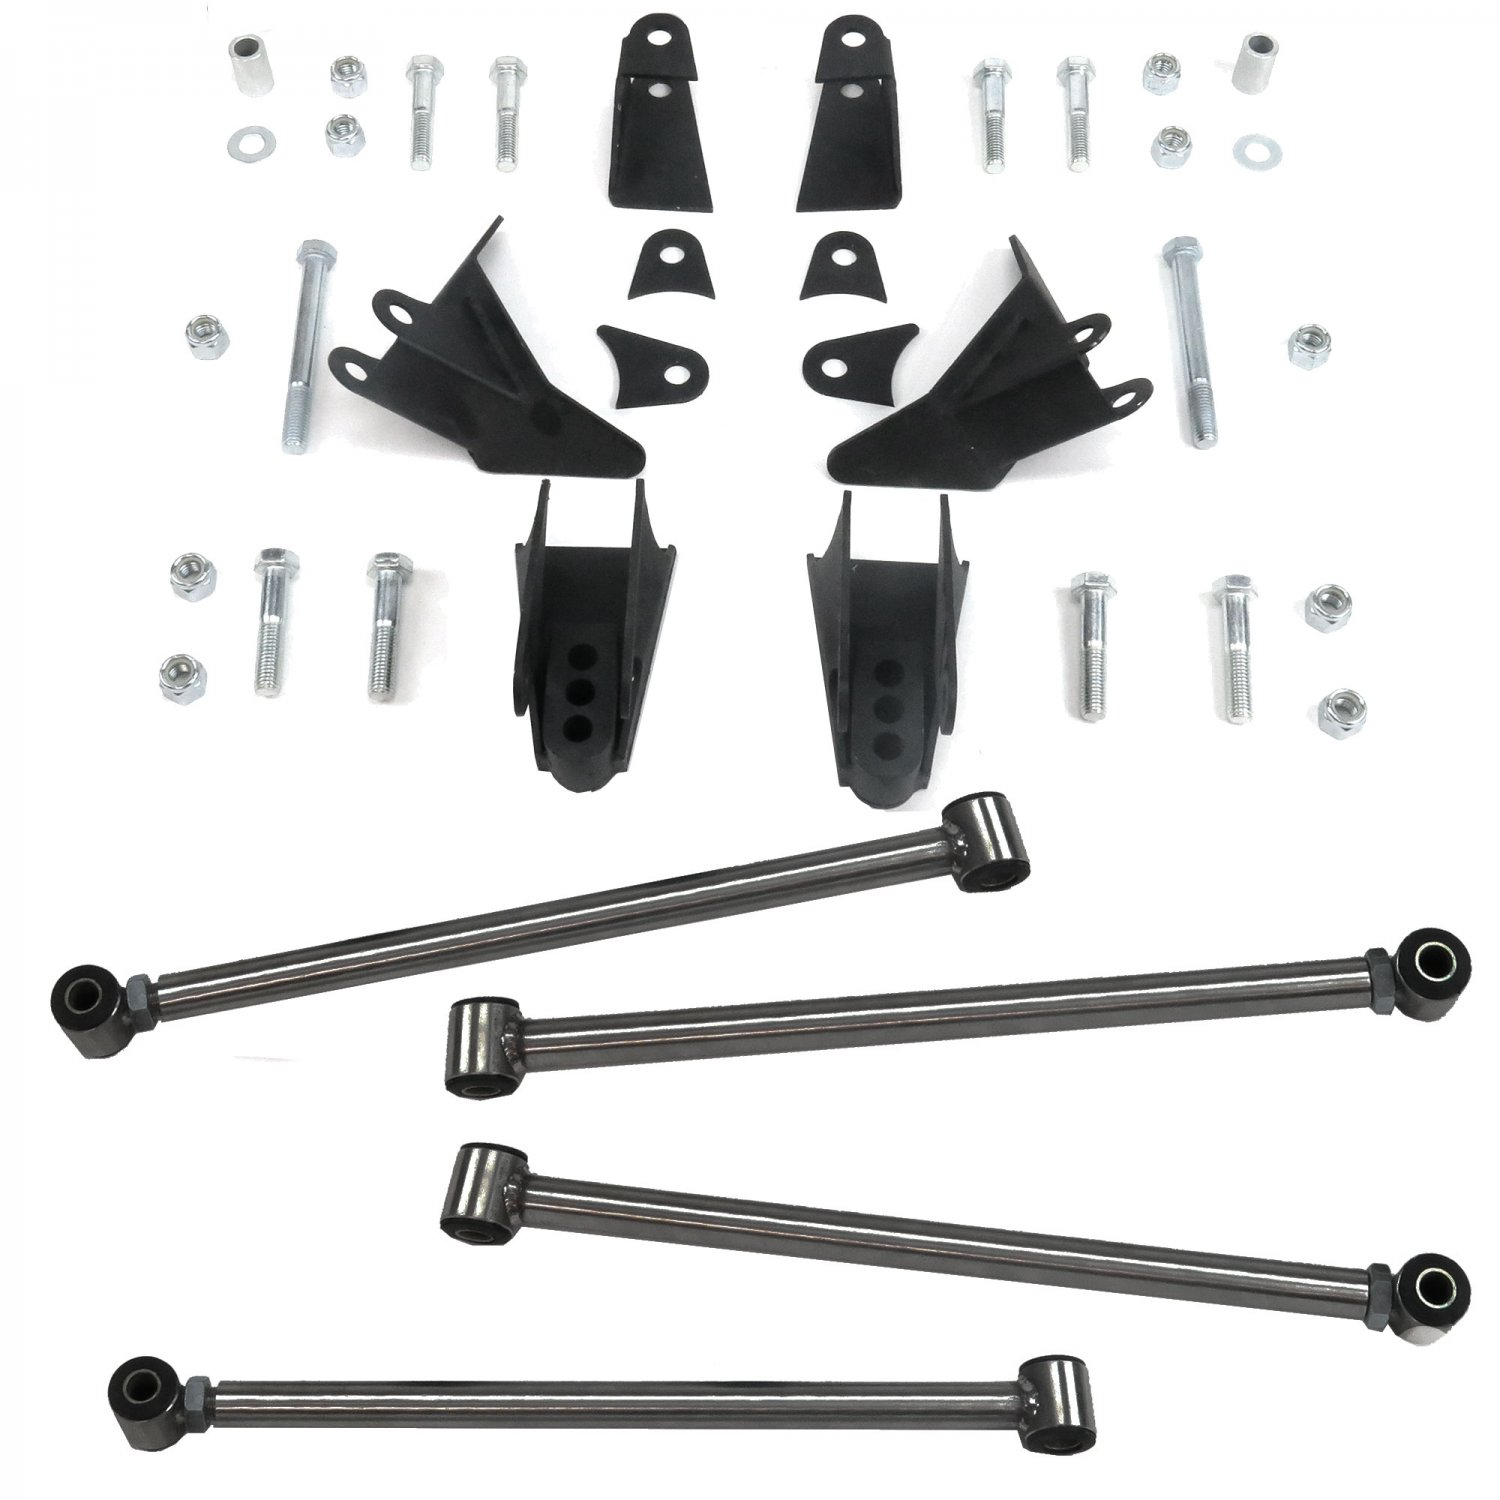 Details about Triangulated Rear Suspension Four 4 Link Kit for 67-69 Camaro  68-74 Nova LS SS